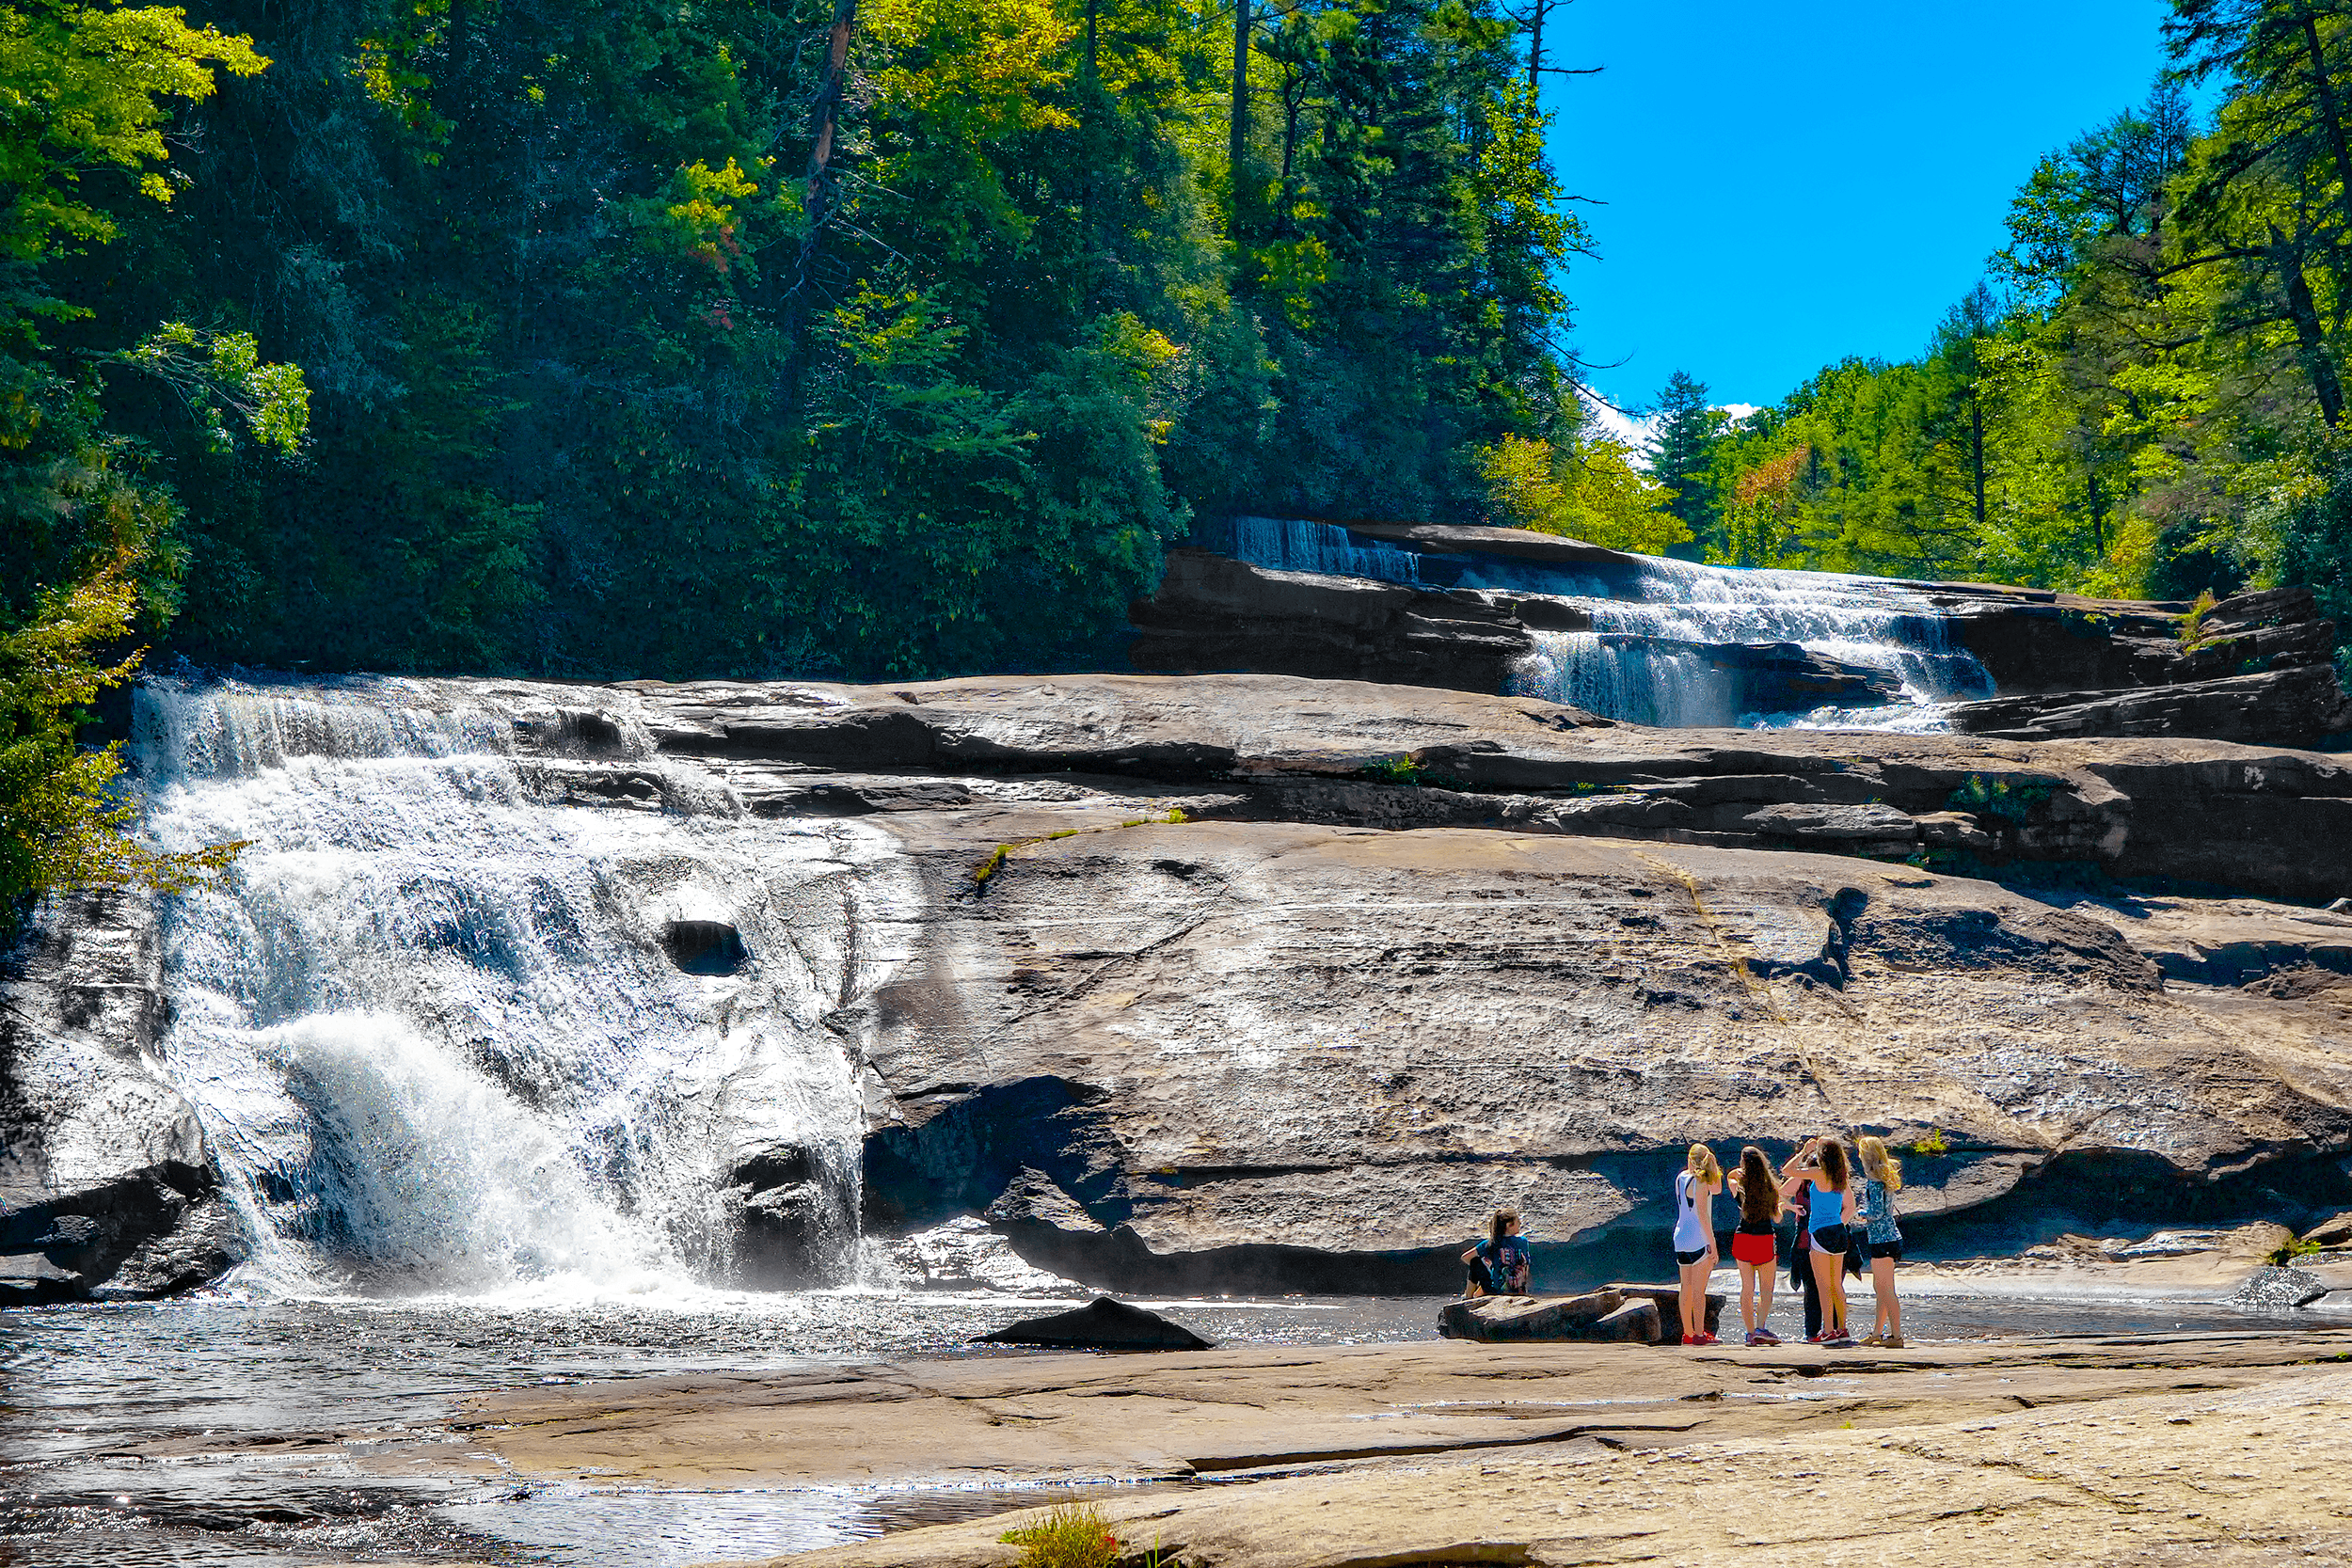 Triple Falls  got its name from the three-tiered series of gentle falls and cascades amounting to a 100 feet drop.